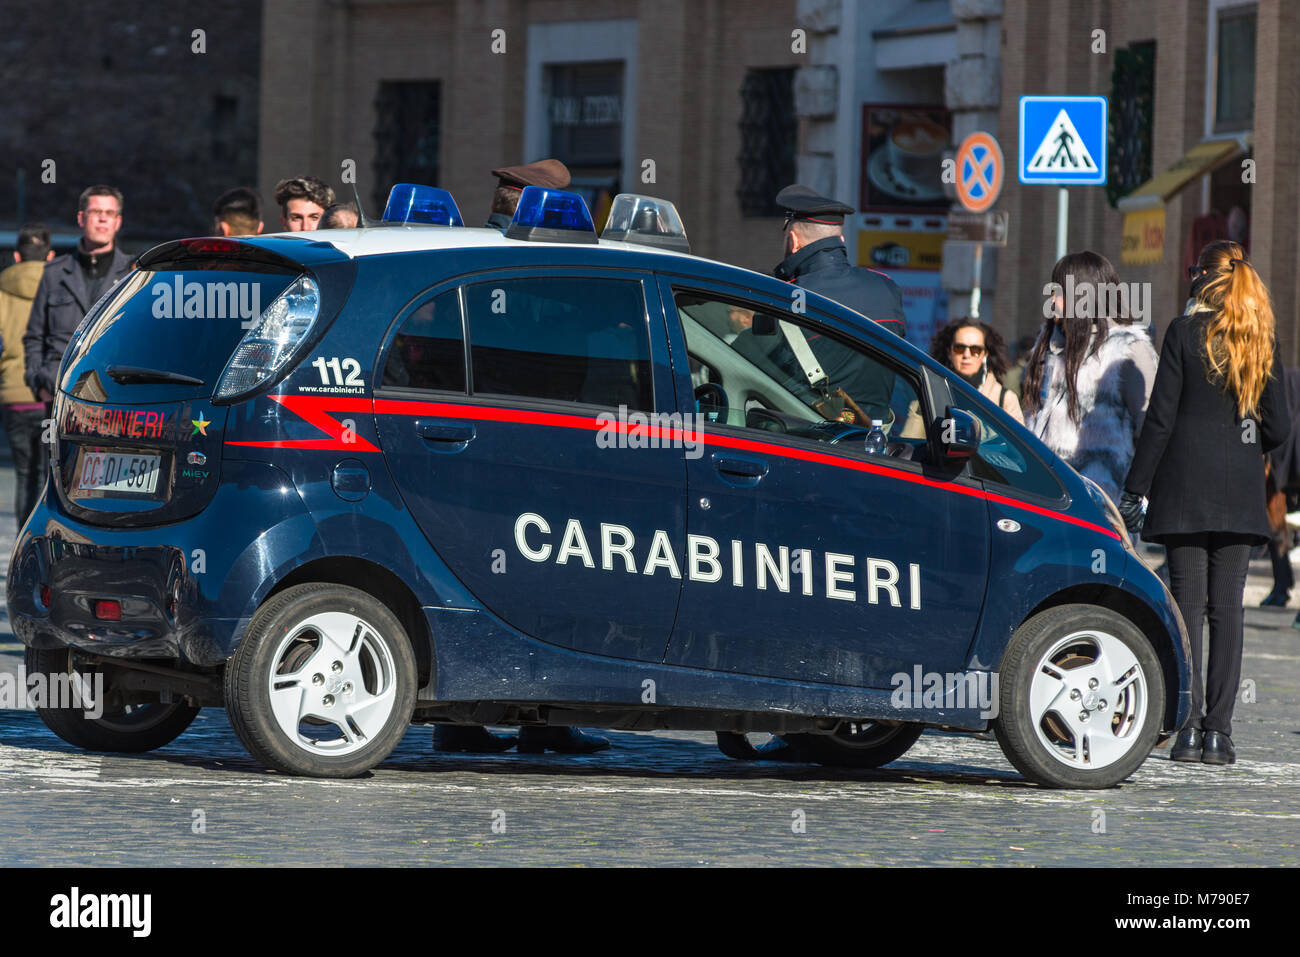 police italy rome photos police italy rome images alamy. Black Bedroom Furniture Sets. Home Design Ideas